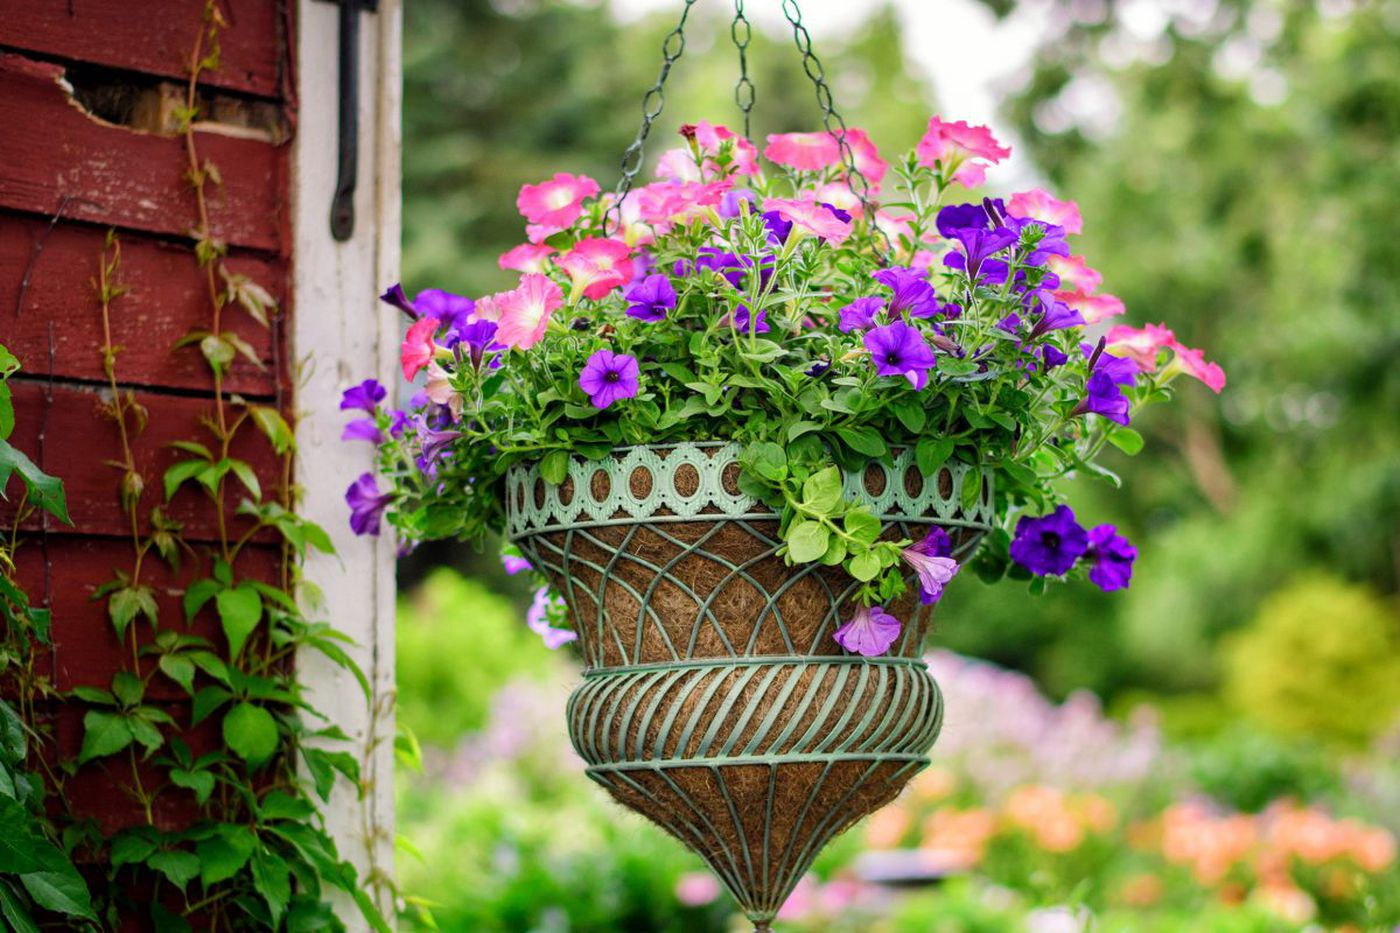 July 28-Aug. 3: In the garden, it's time to…